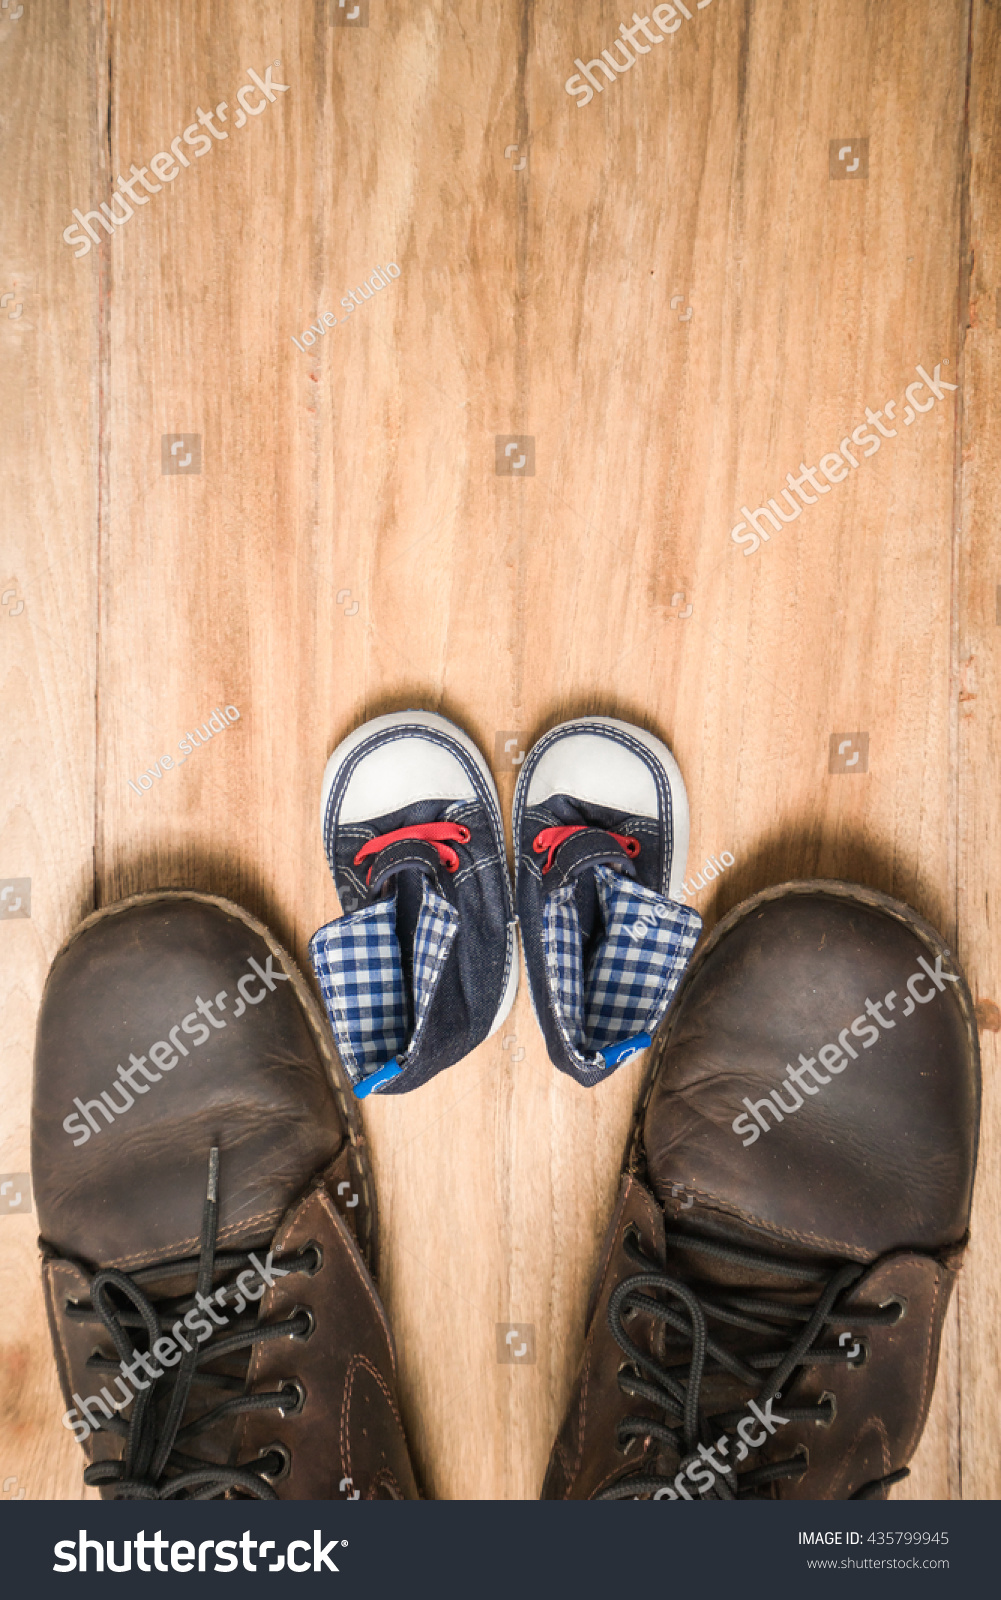 Daddy's boots and baby's sneakers on wood background fathers day concept.flat lay